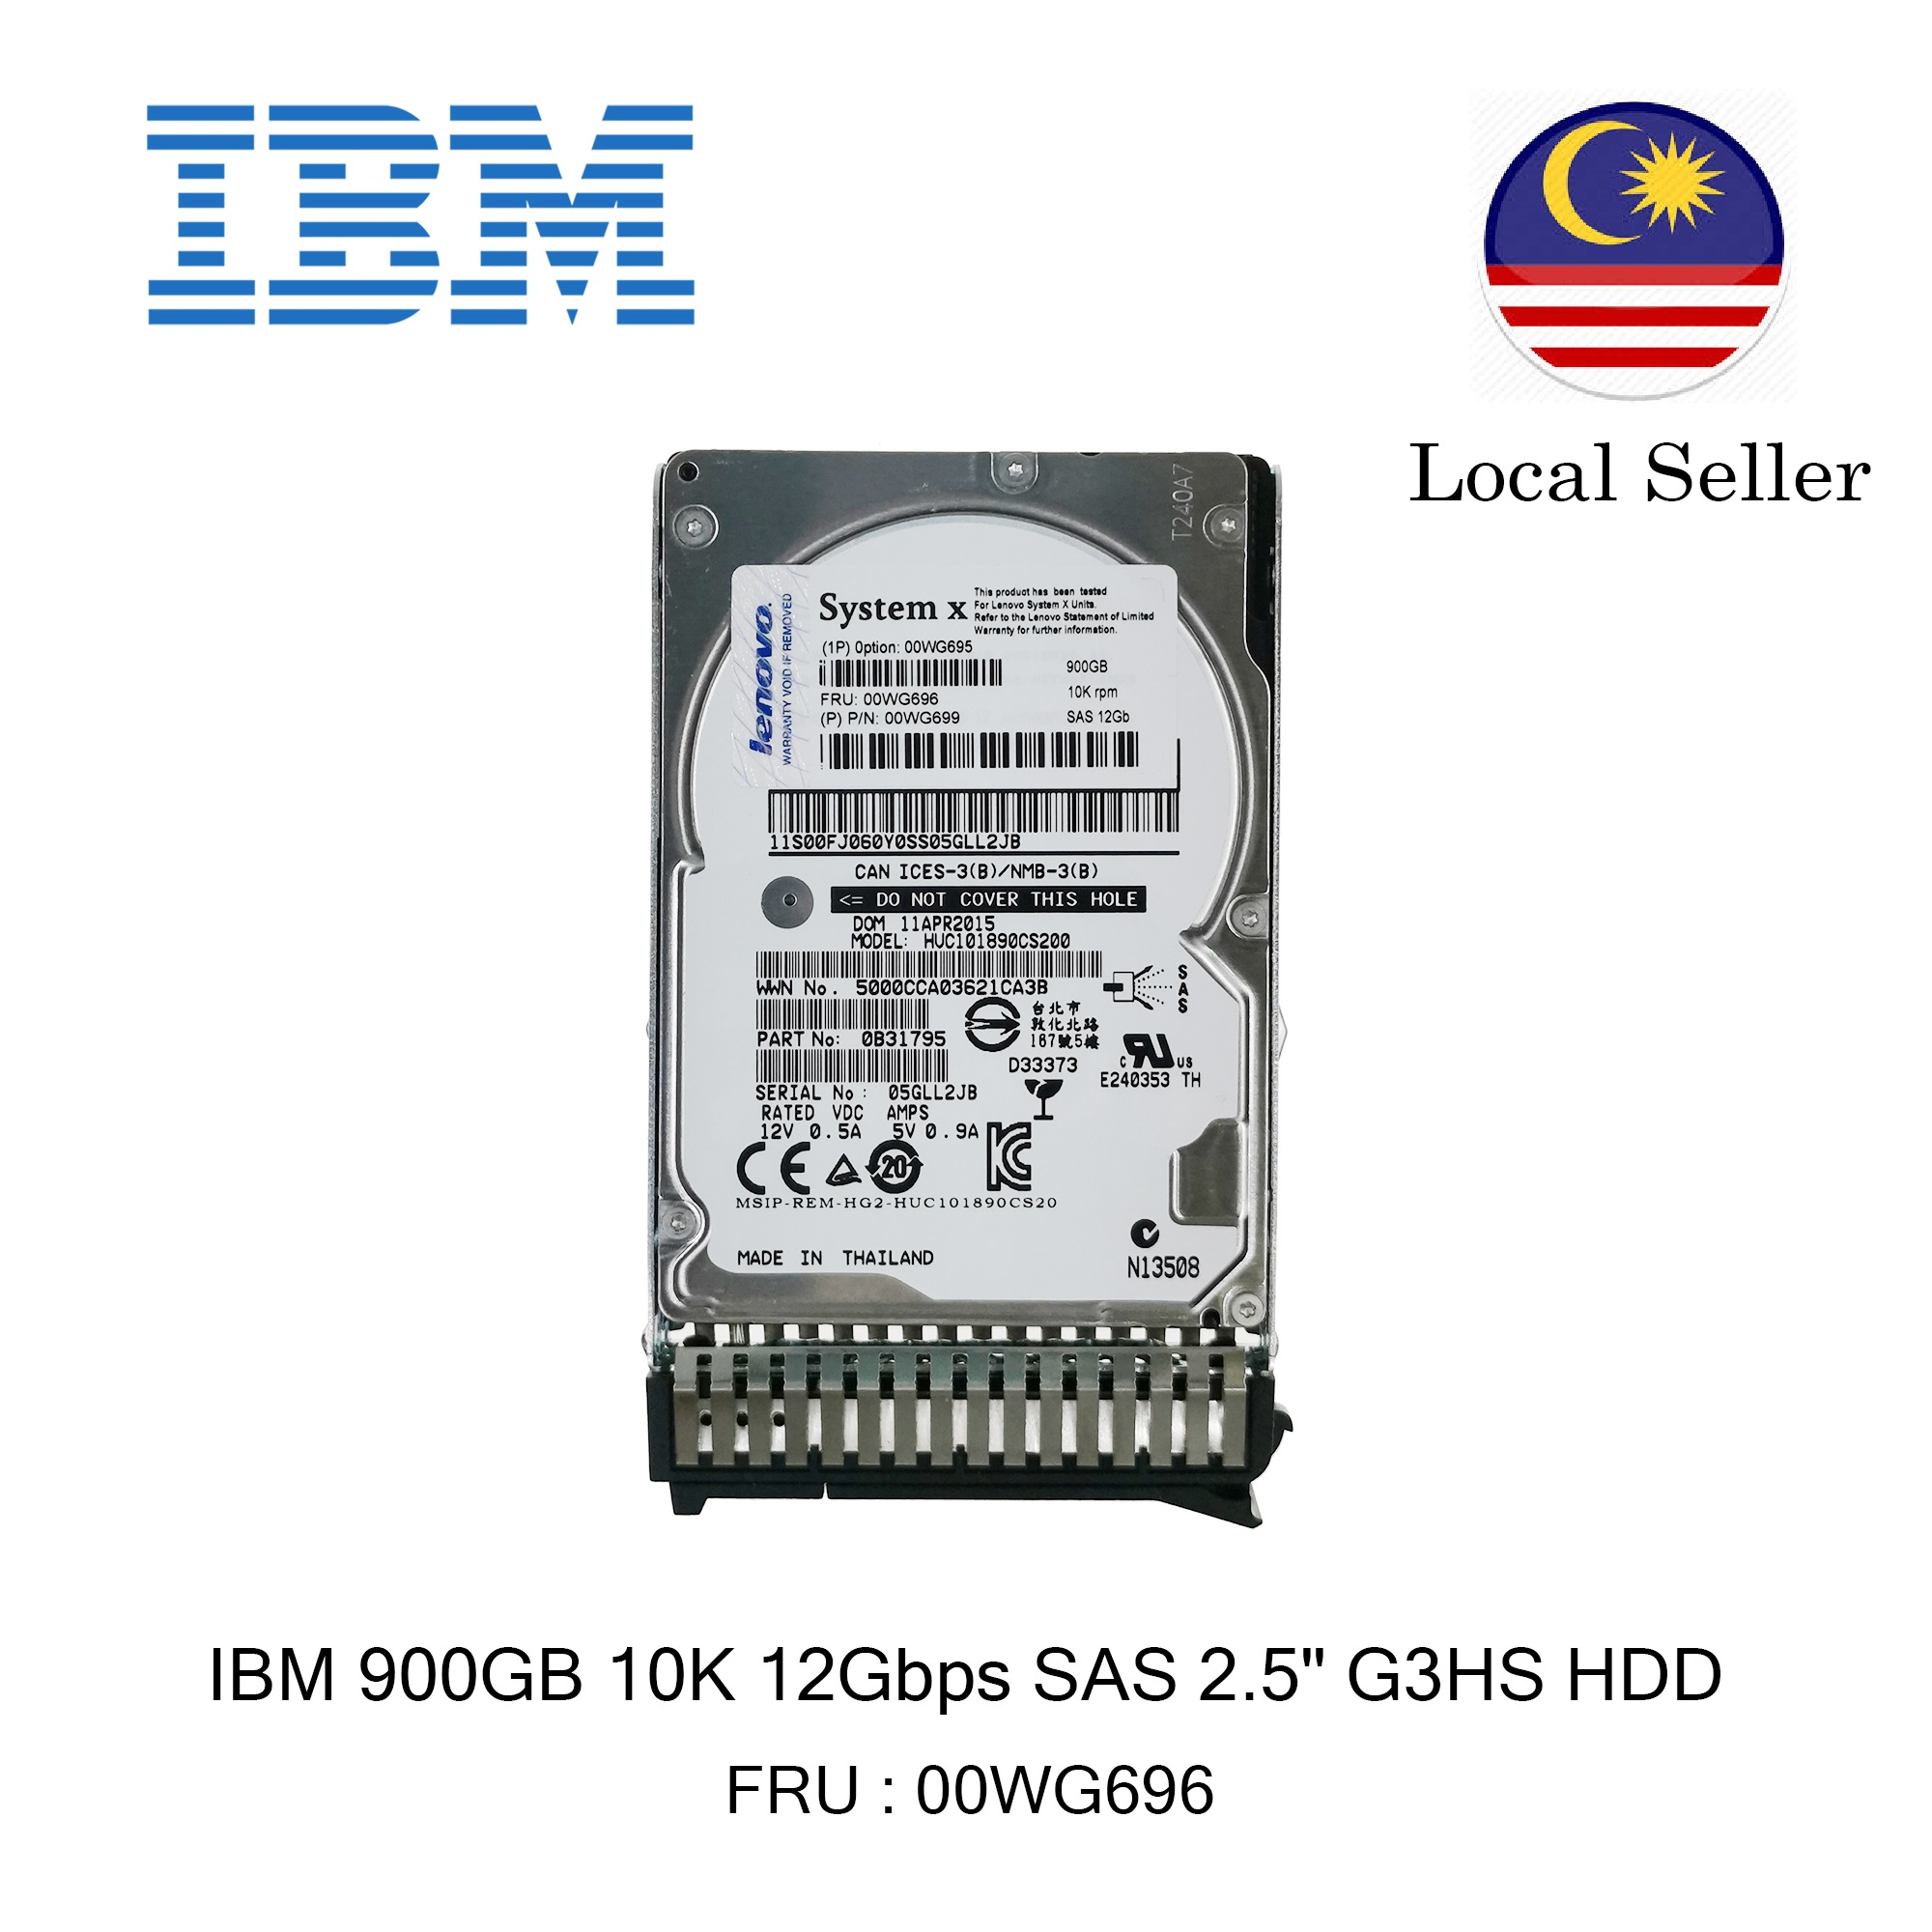 IBM 900GB 10K 12Gbps SAS 2.5 HDD // 00WG696